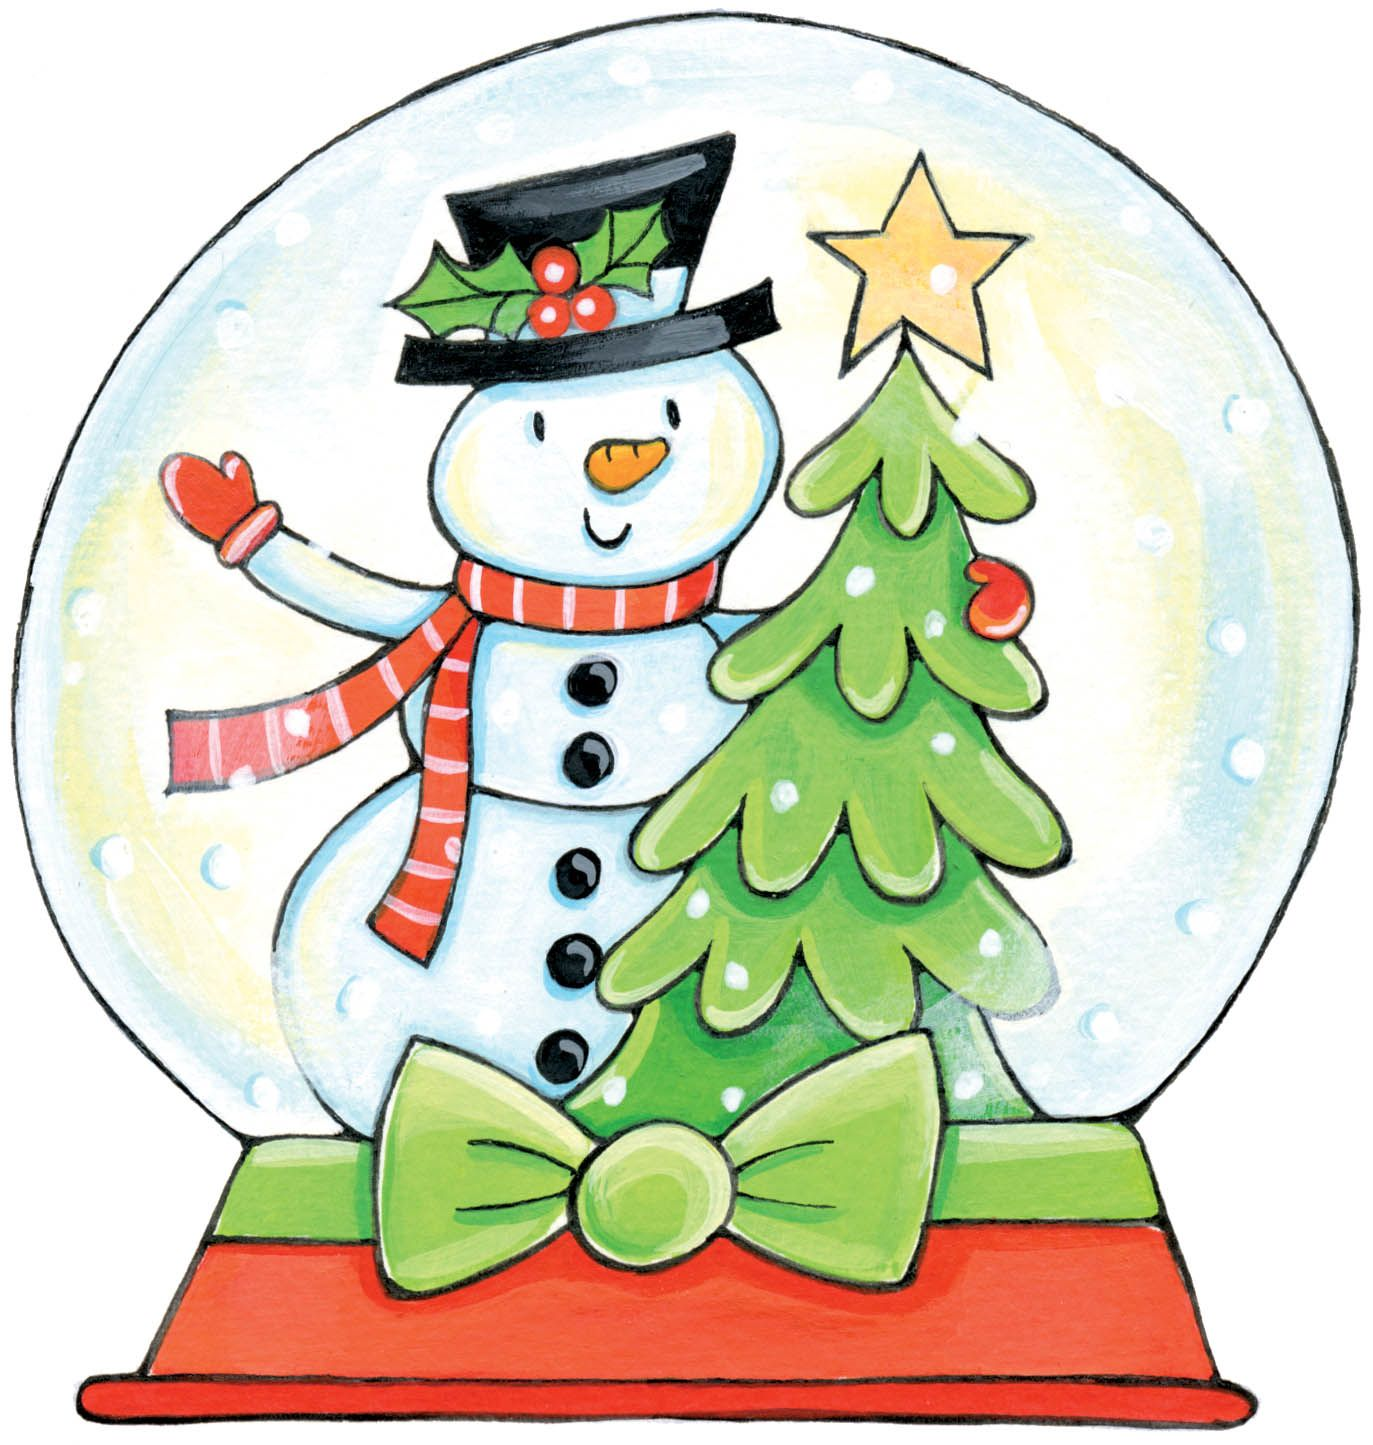 snow globe animated clip art christmas snow globes clip art snow rh pinterest com christmas animated clipart free christmas animated clipart free